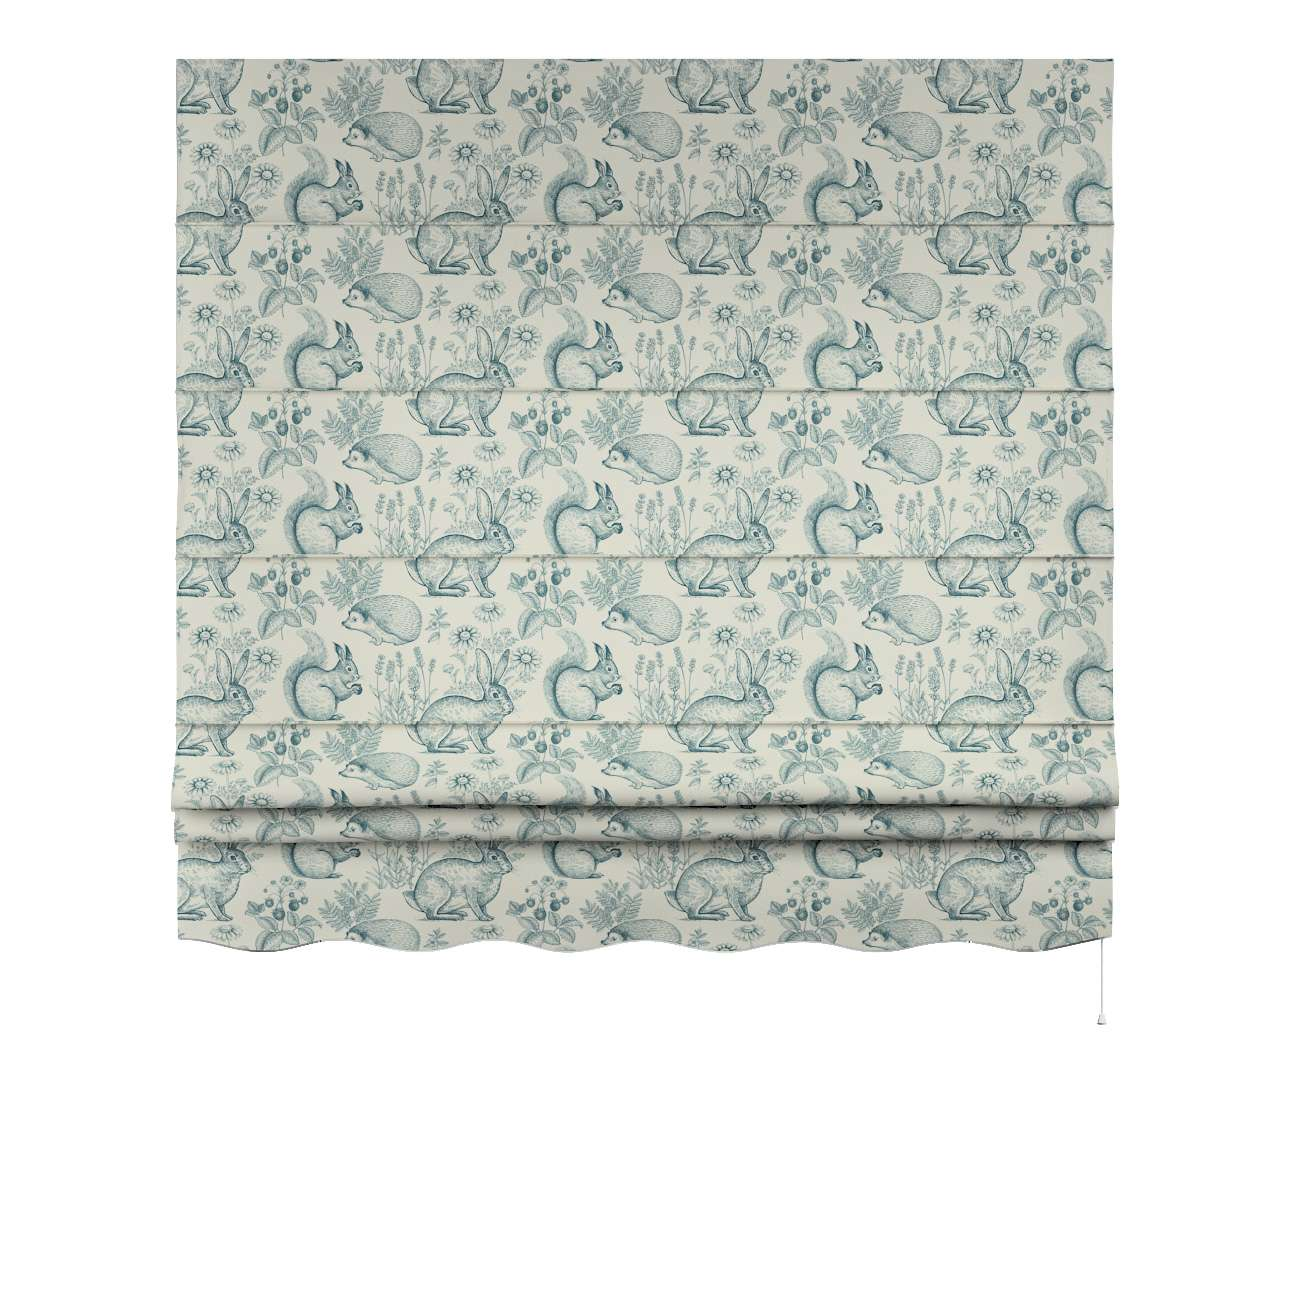 Mela roman blind in collection Magic Collection, fabric: 500-04